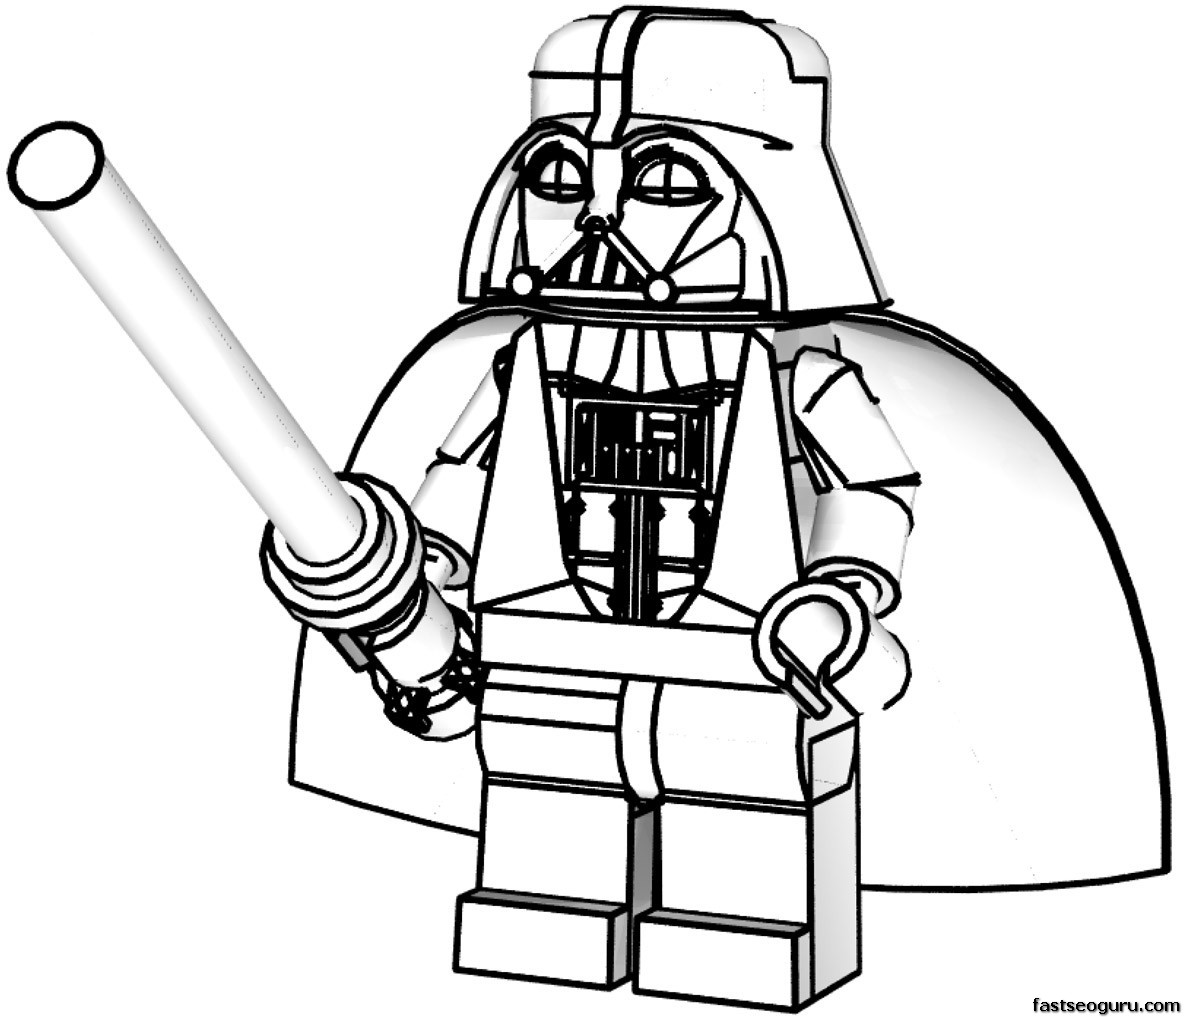 star wars coloring images star wars coloring pages the force awakens coloring pages coloring star images wars